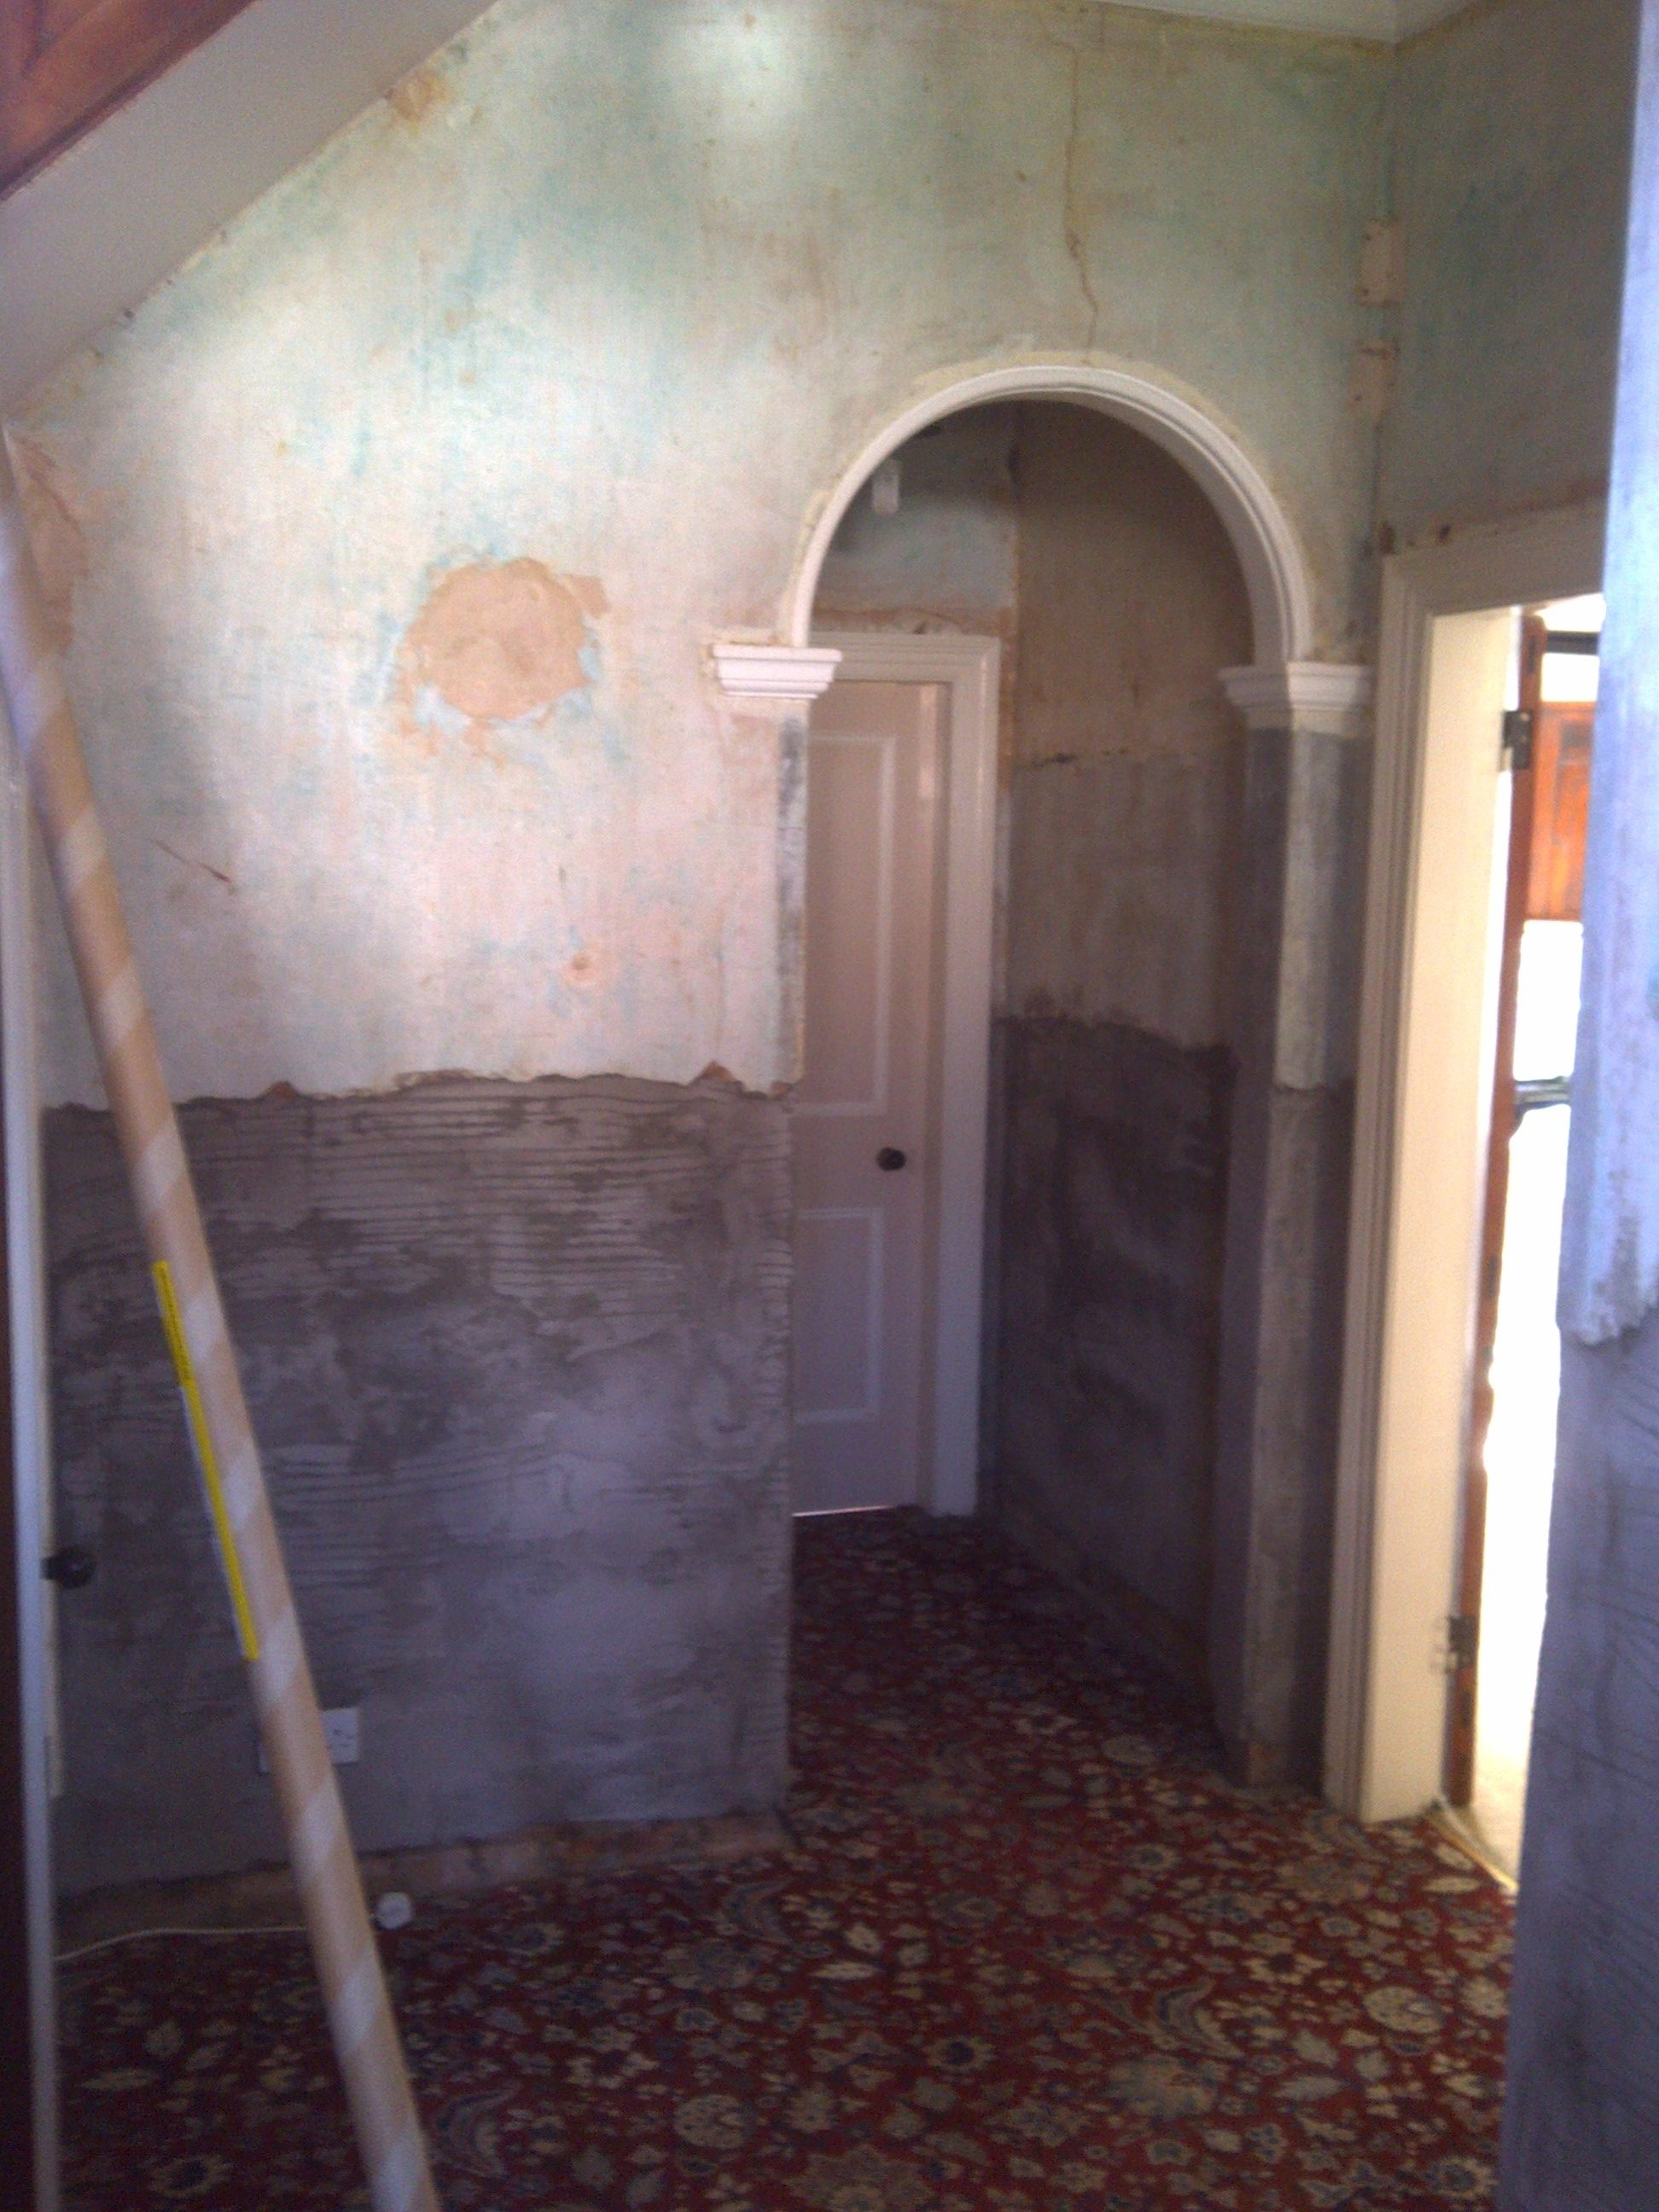 Rising Damp Example 1 - During